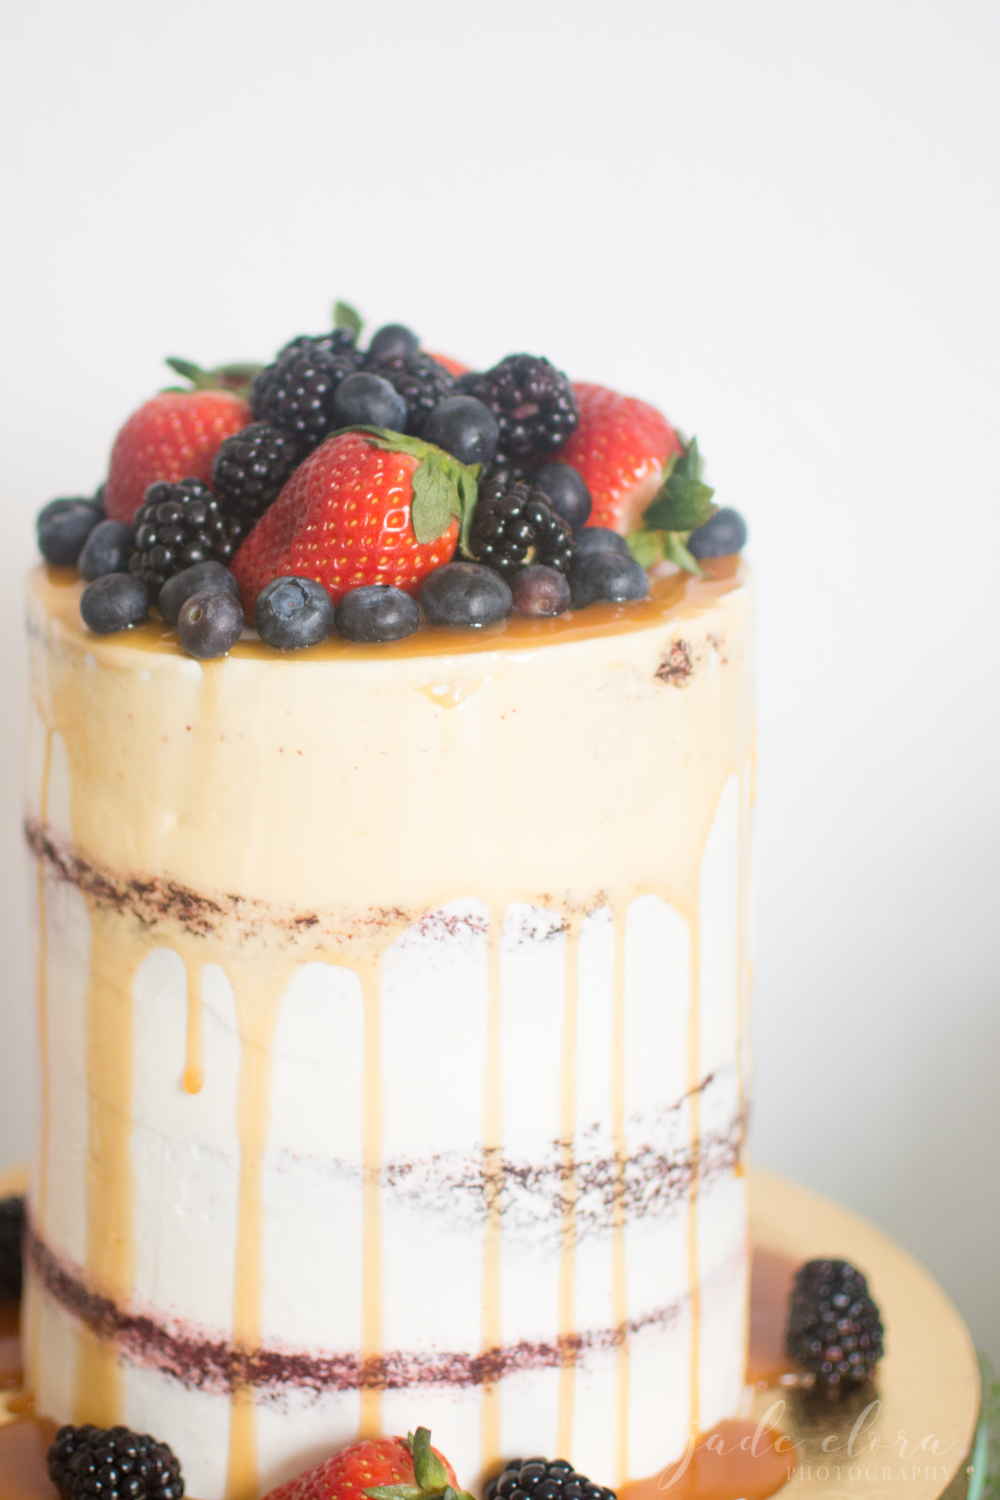 Naked Cake Covered in Berries